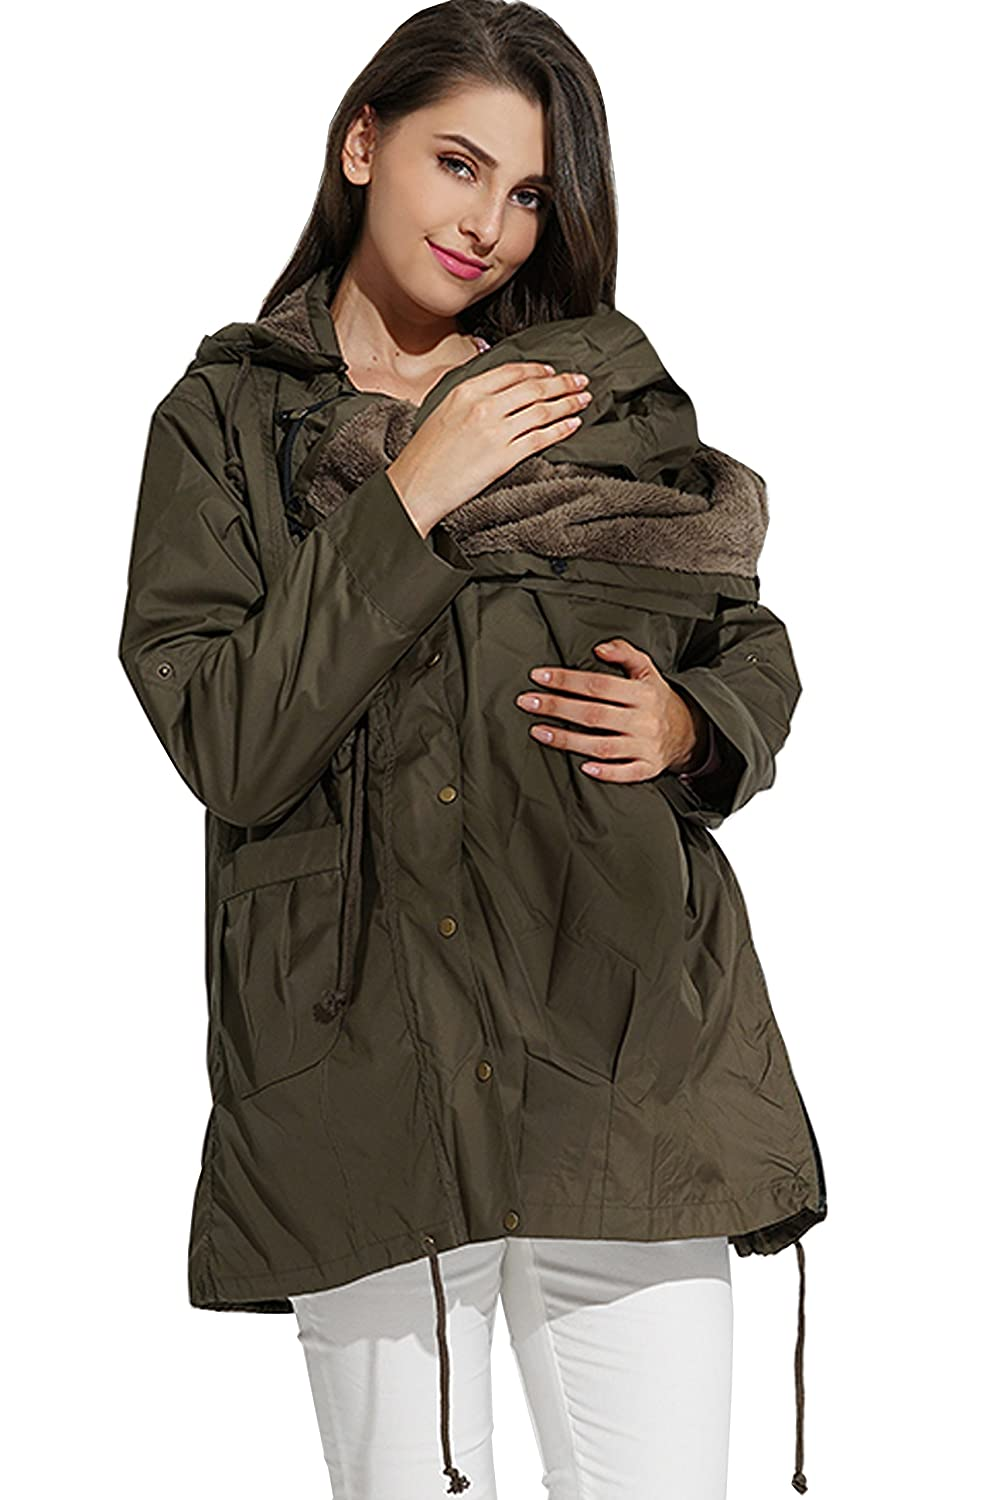 Sweet Mommy Multifunctional Mod's Style Mama Coat with a Baby Pouch